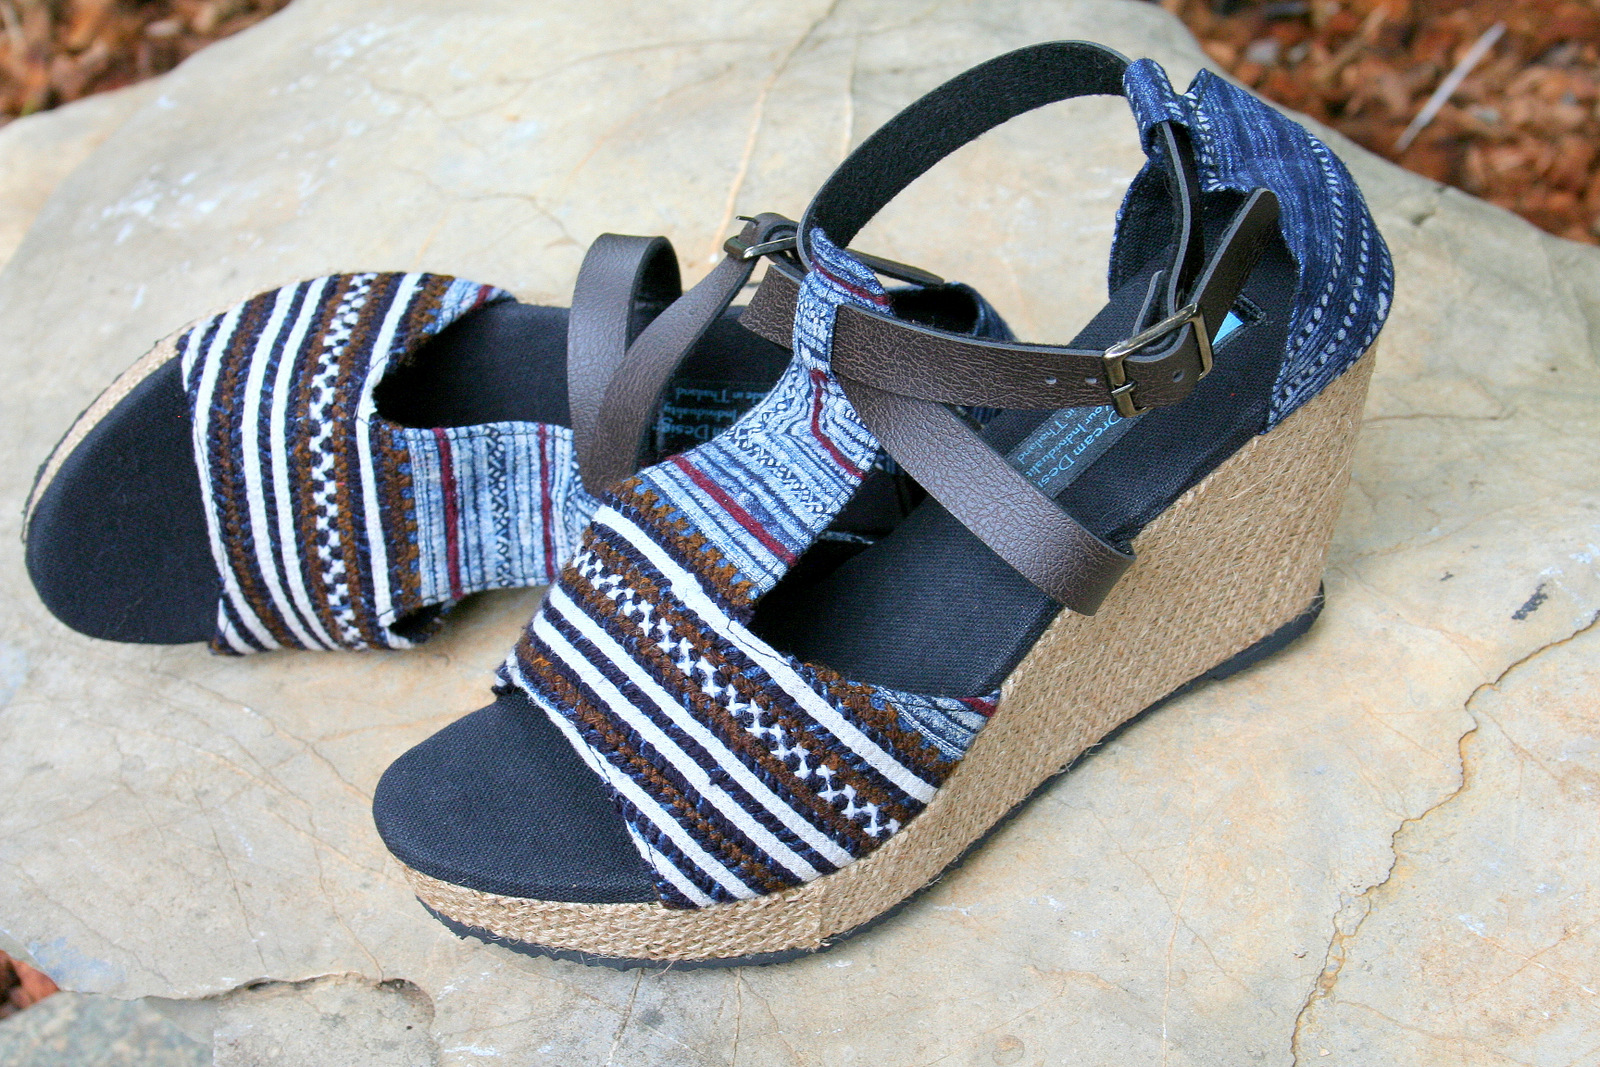 LEIGHANNA WOMENS VEGAN WEDGE HEEL SANDALS IN EARTHY HMONG EMBROIDERY